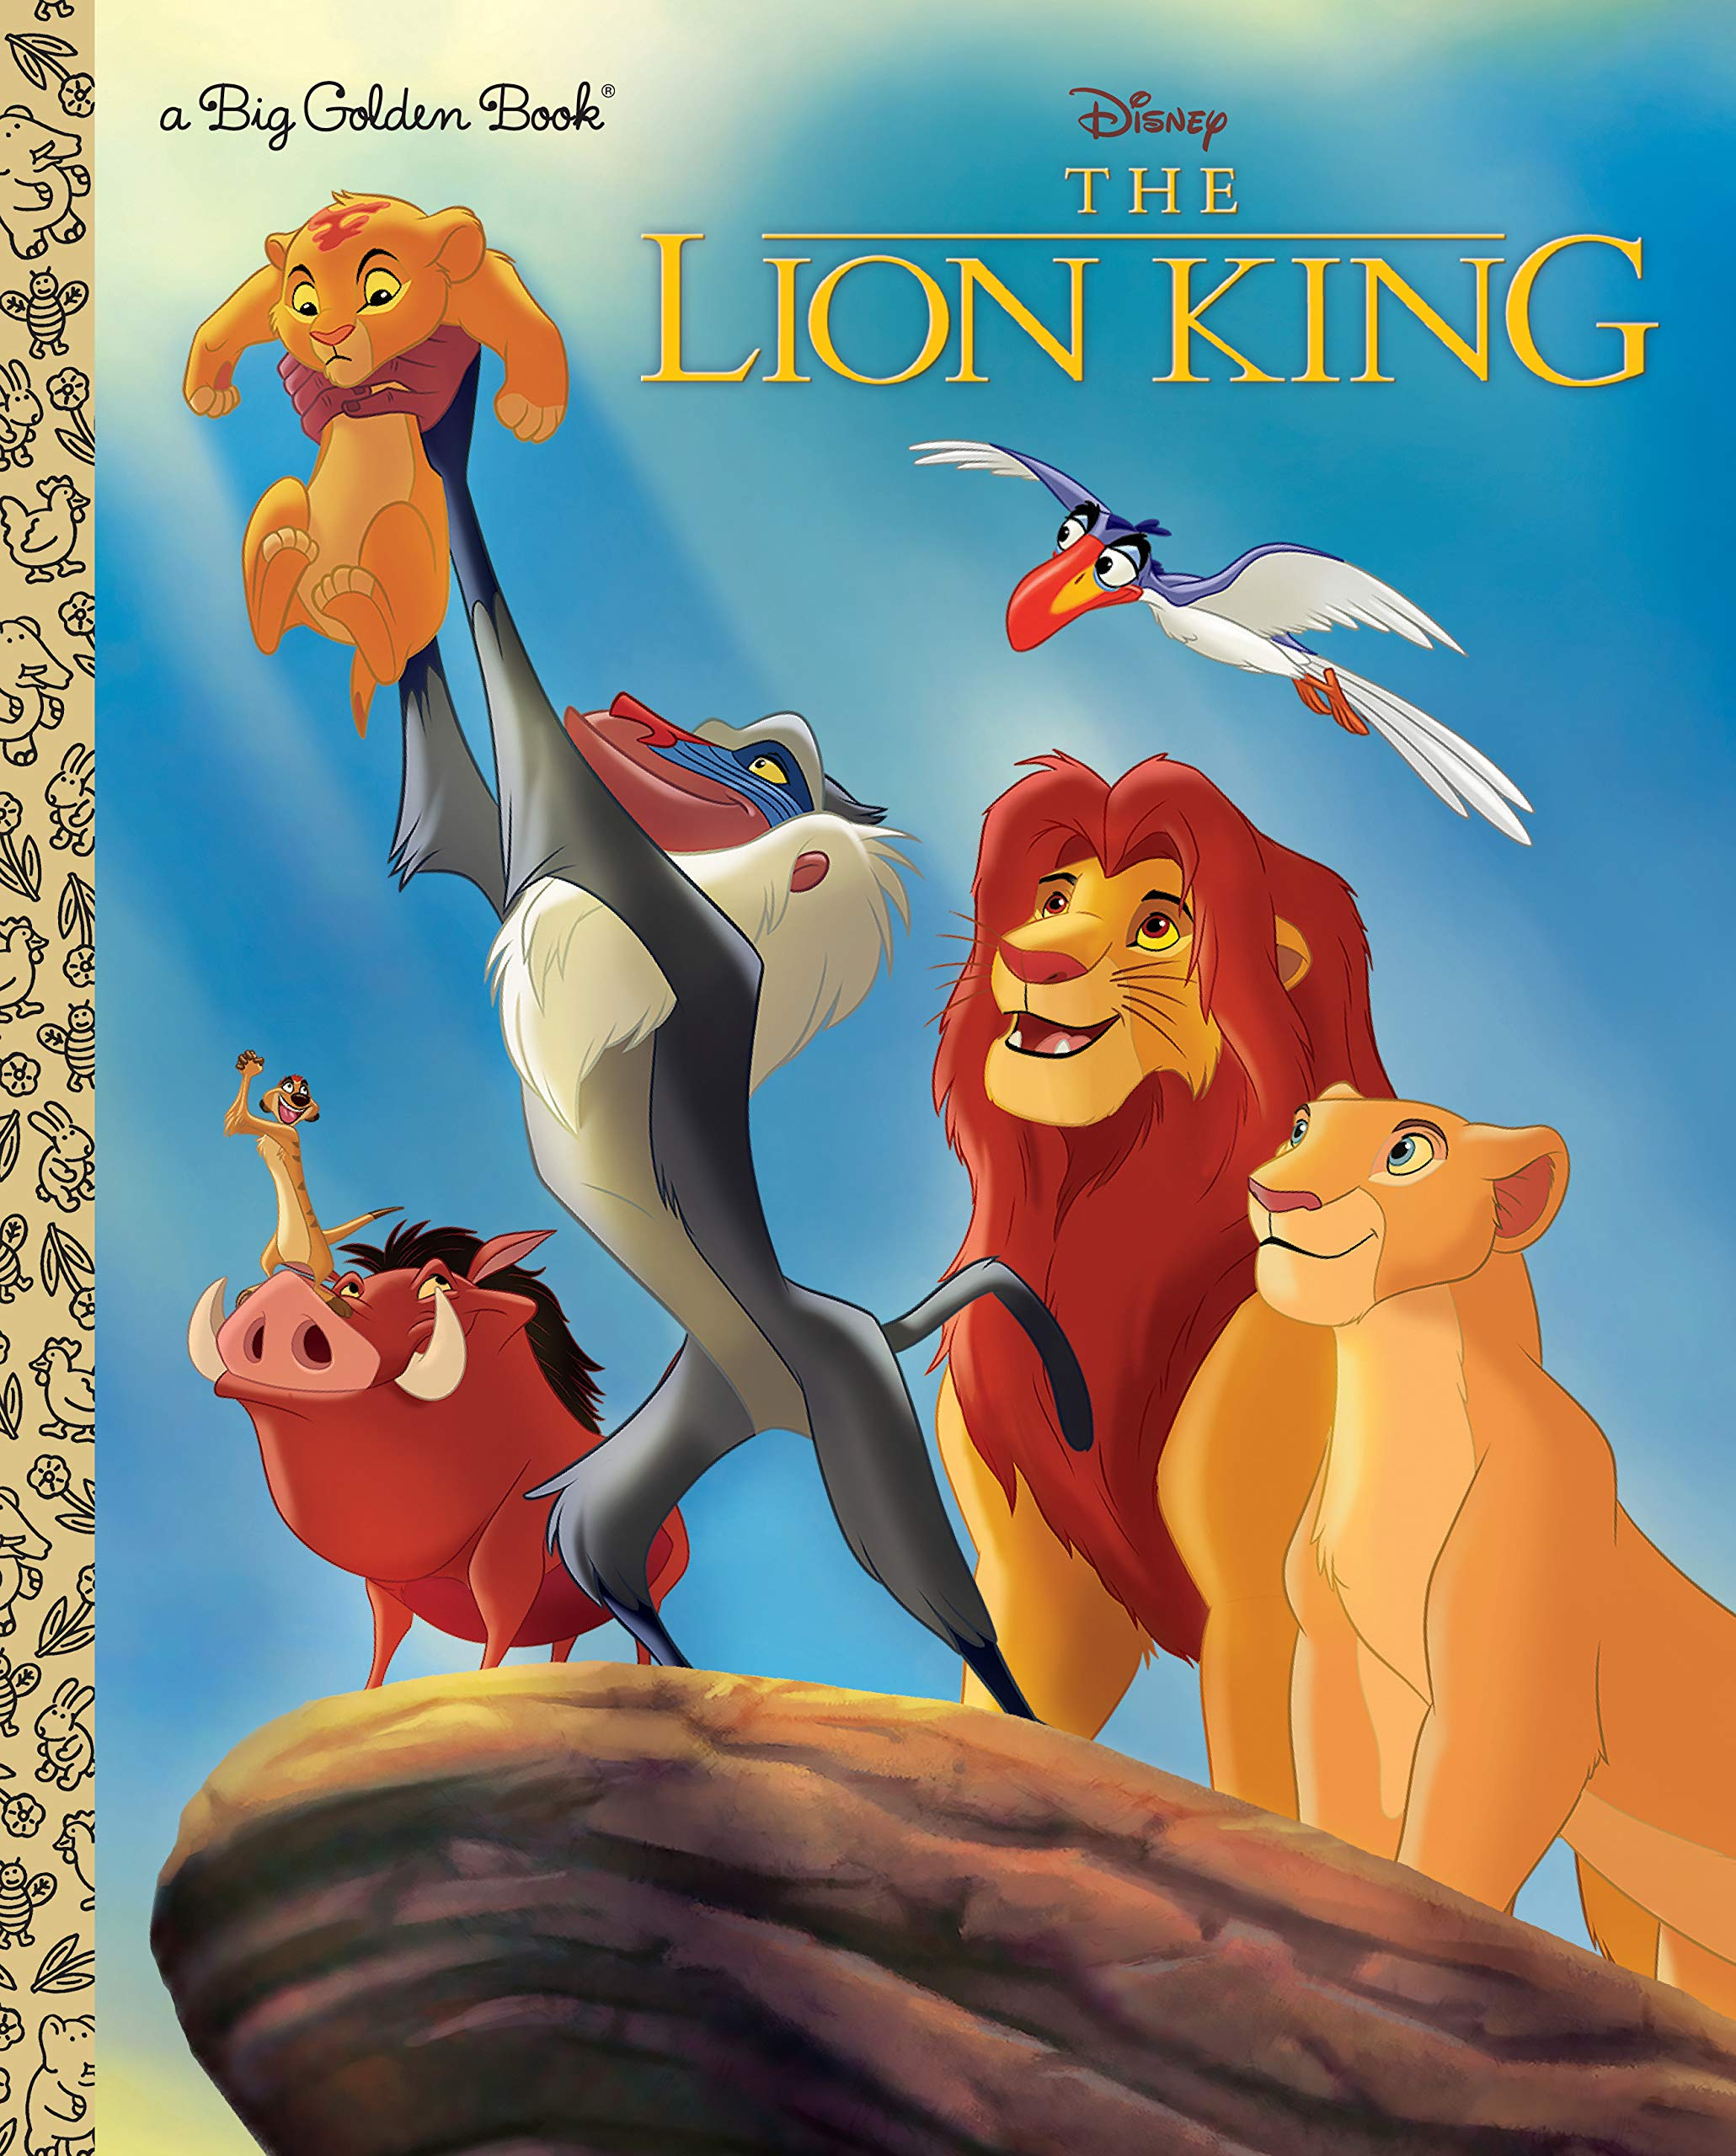 DISNEY LION KING BIG GOLDEN BOOK (Big Golden Books)